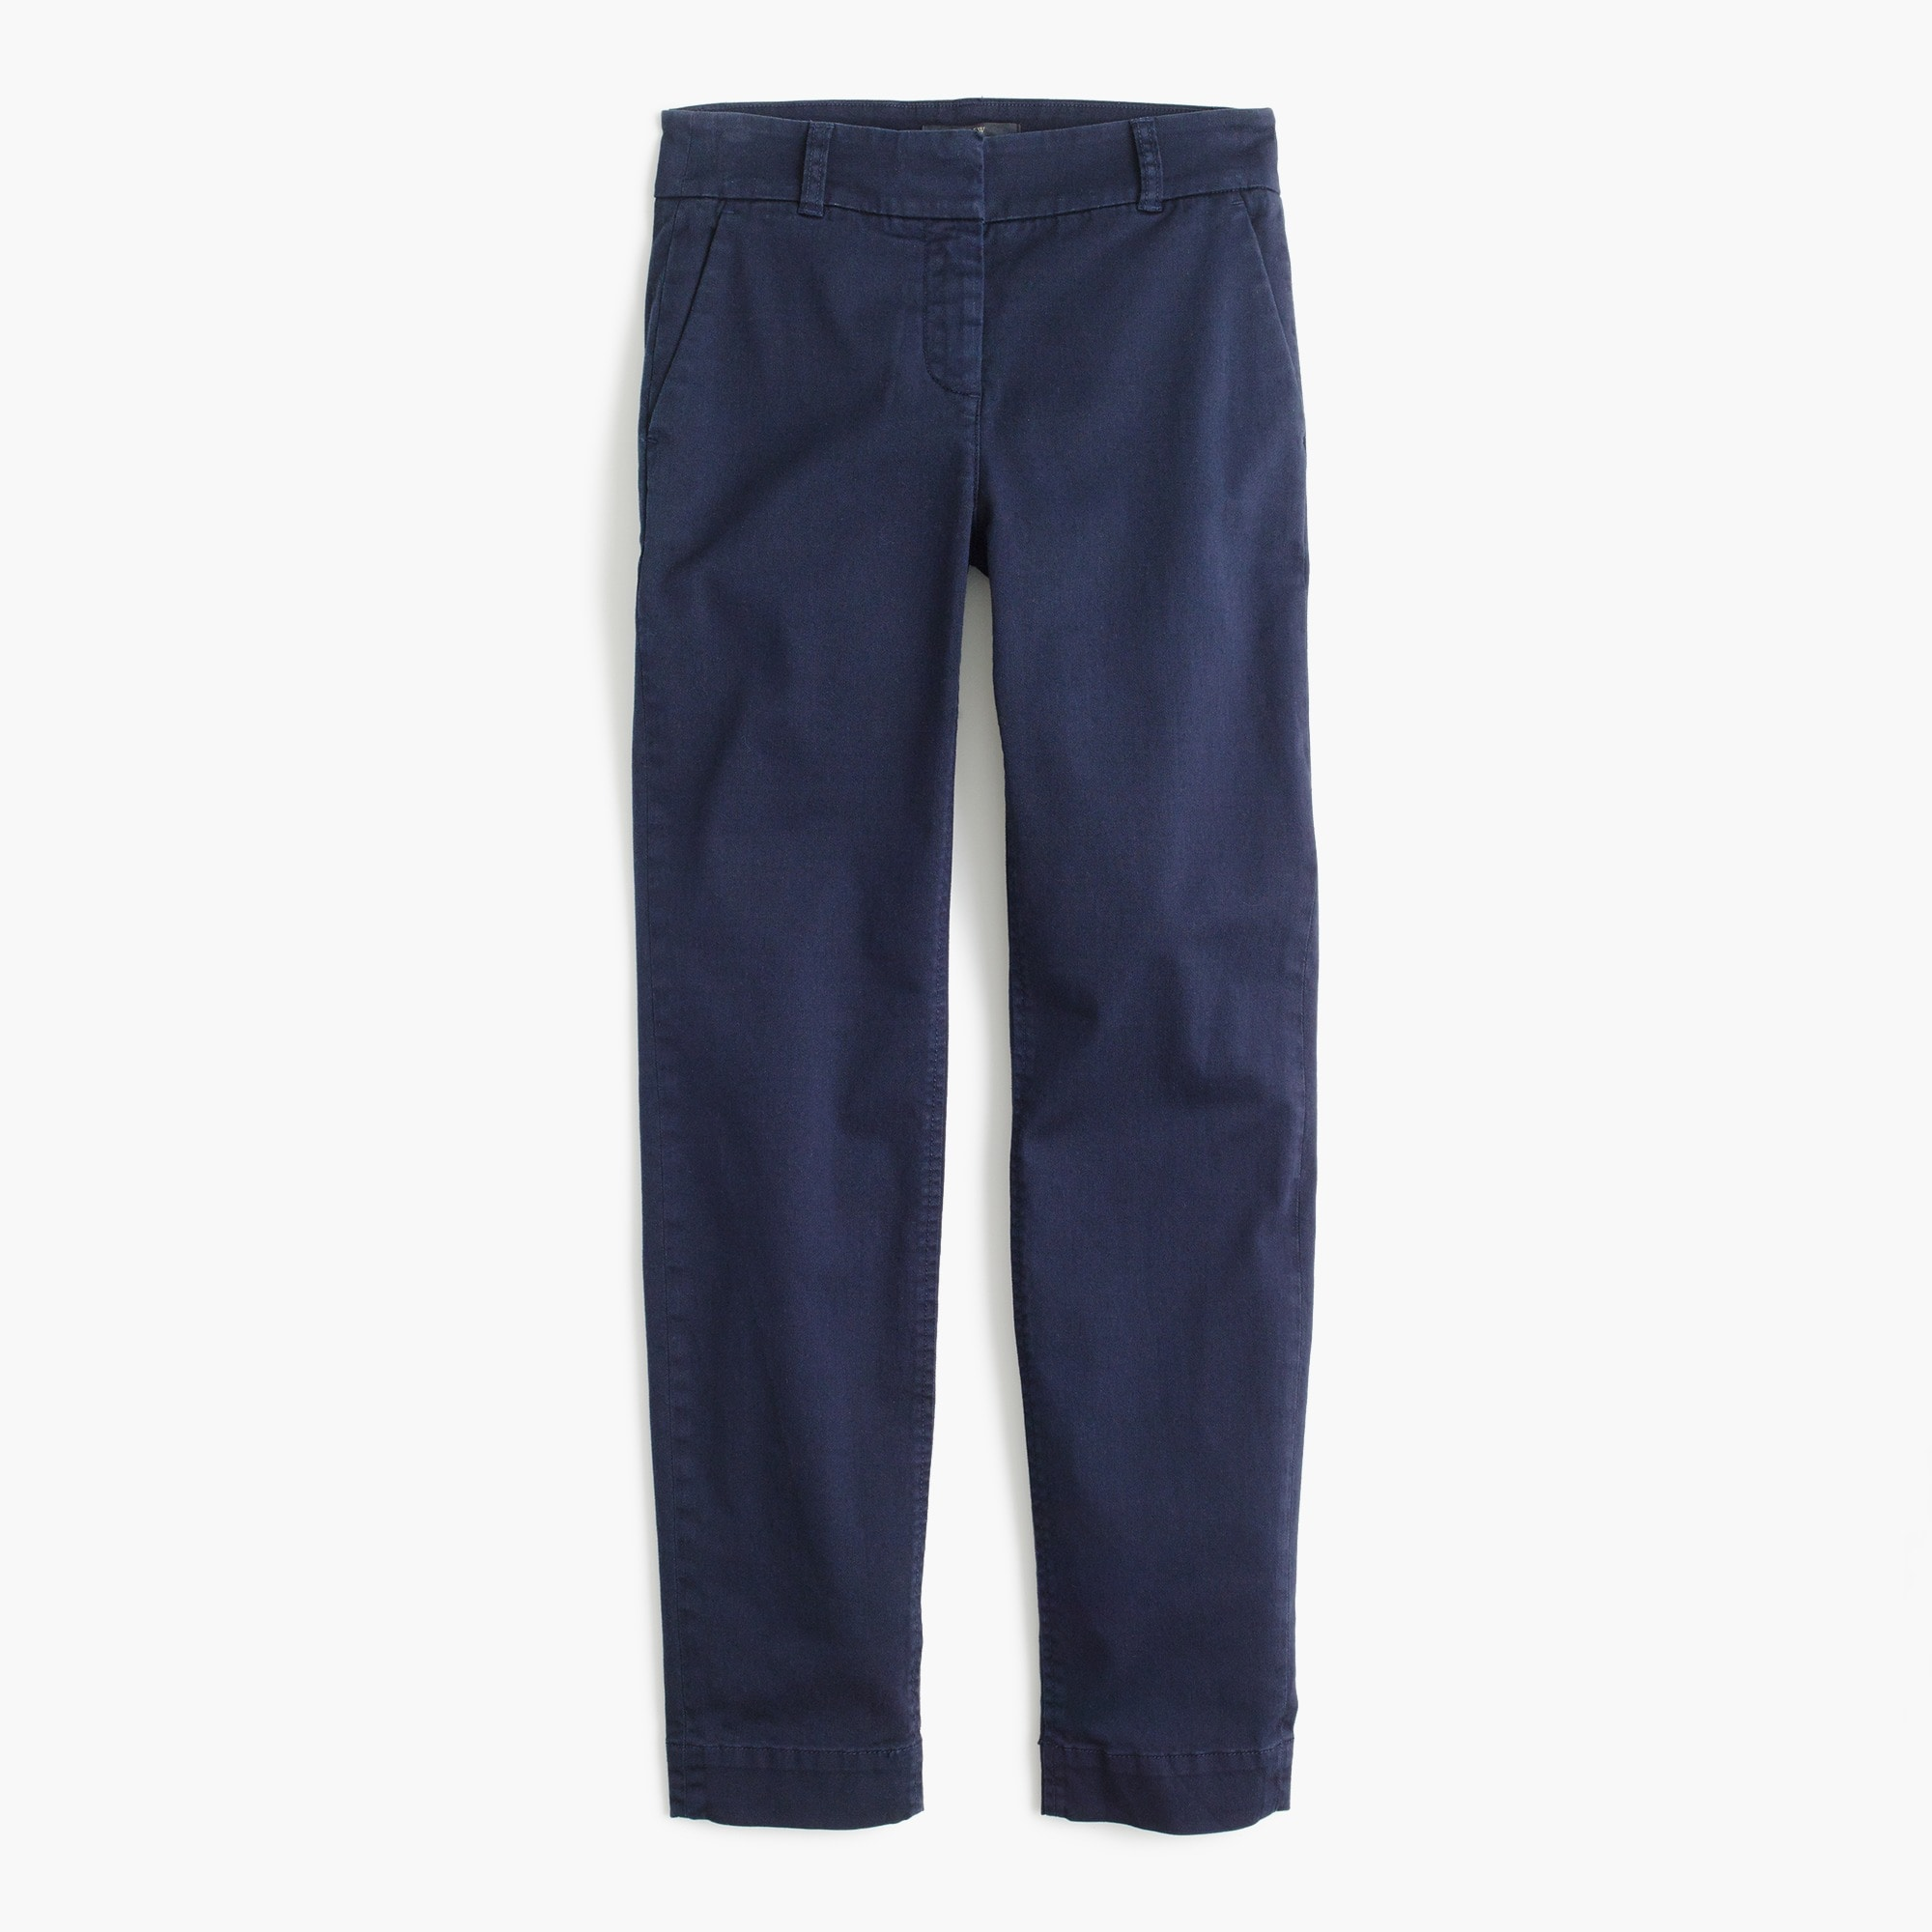 Petitecropped pant in stretch chino